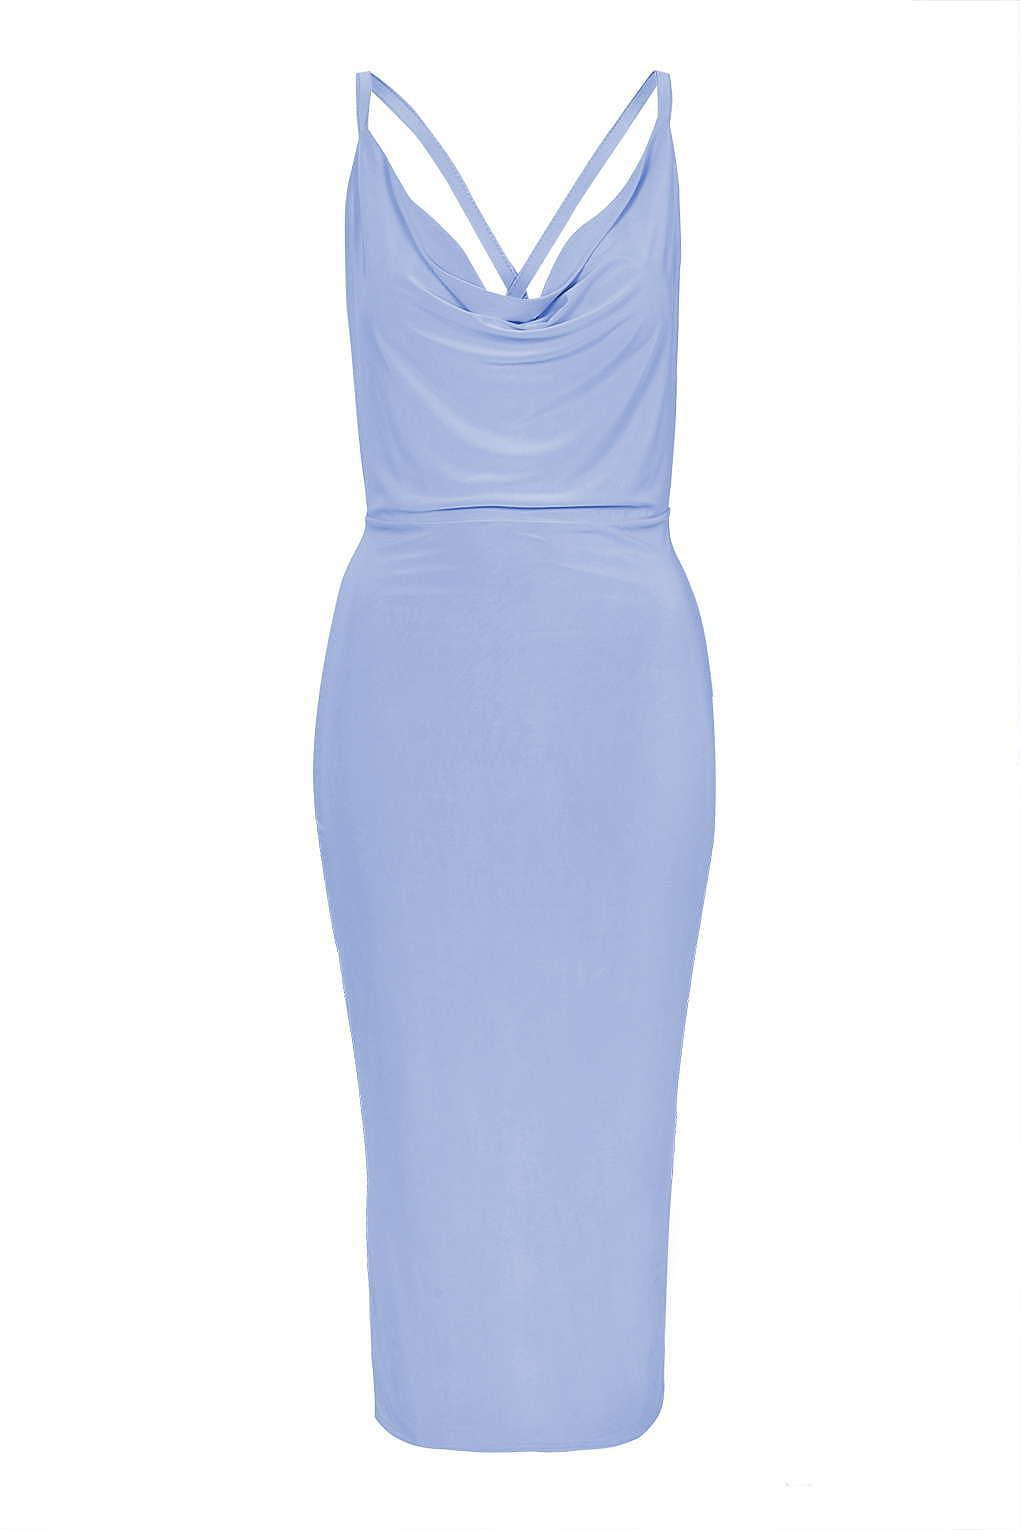 8f6f6f0a86 Womens powder blue cowl neck cross back slinky dress by rare from Topshop -  £35 at ClothingByColour.com